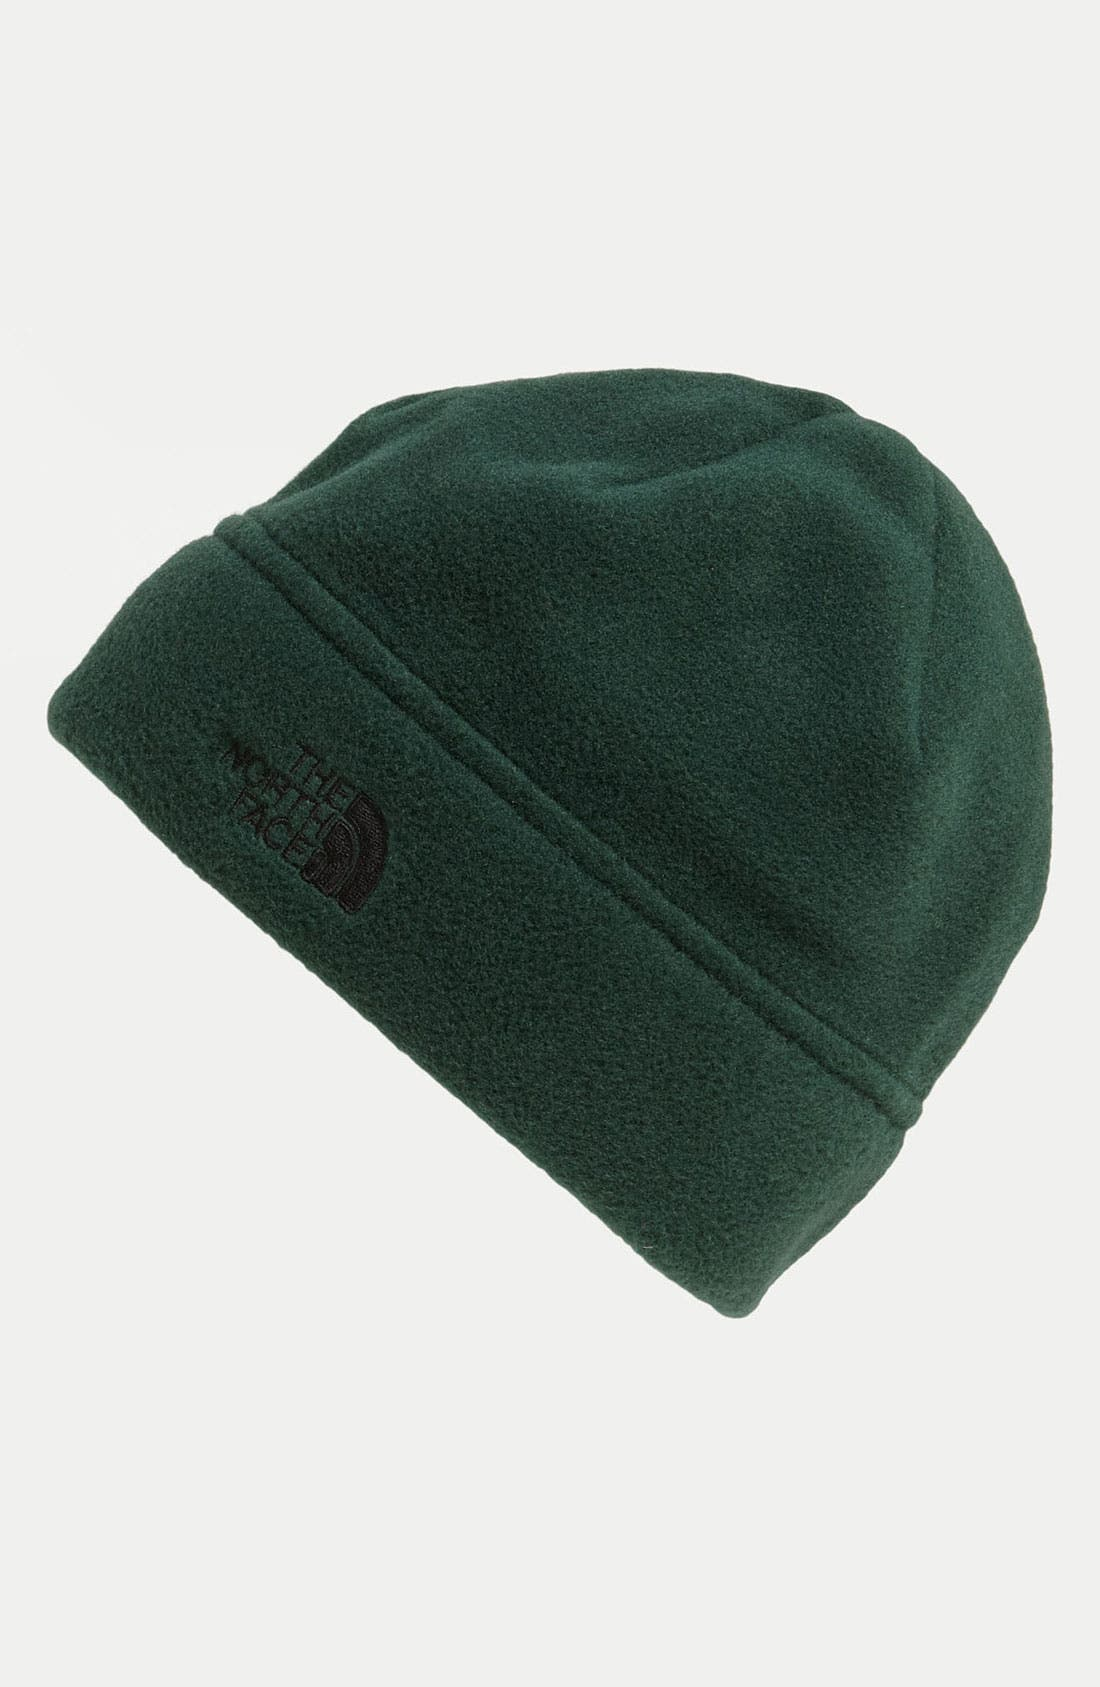 Main Image - The North Face 'Flash' Recycled Fleece Beanie